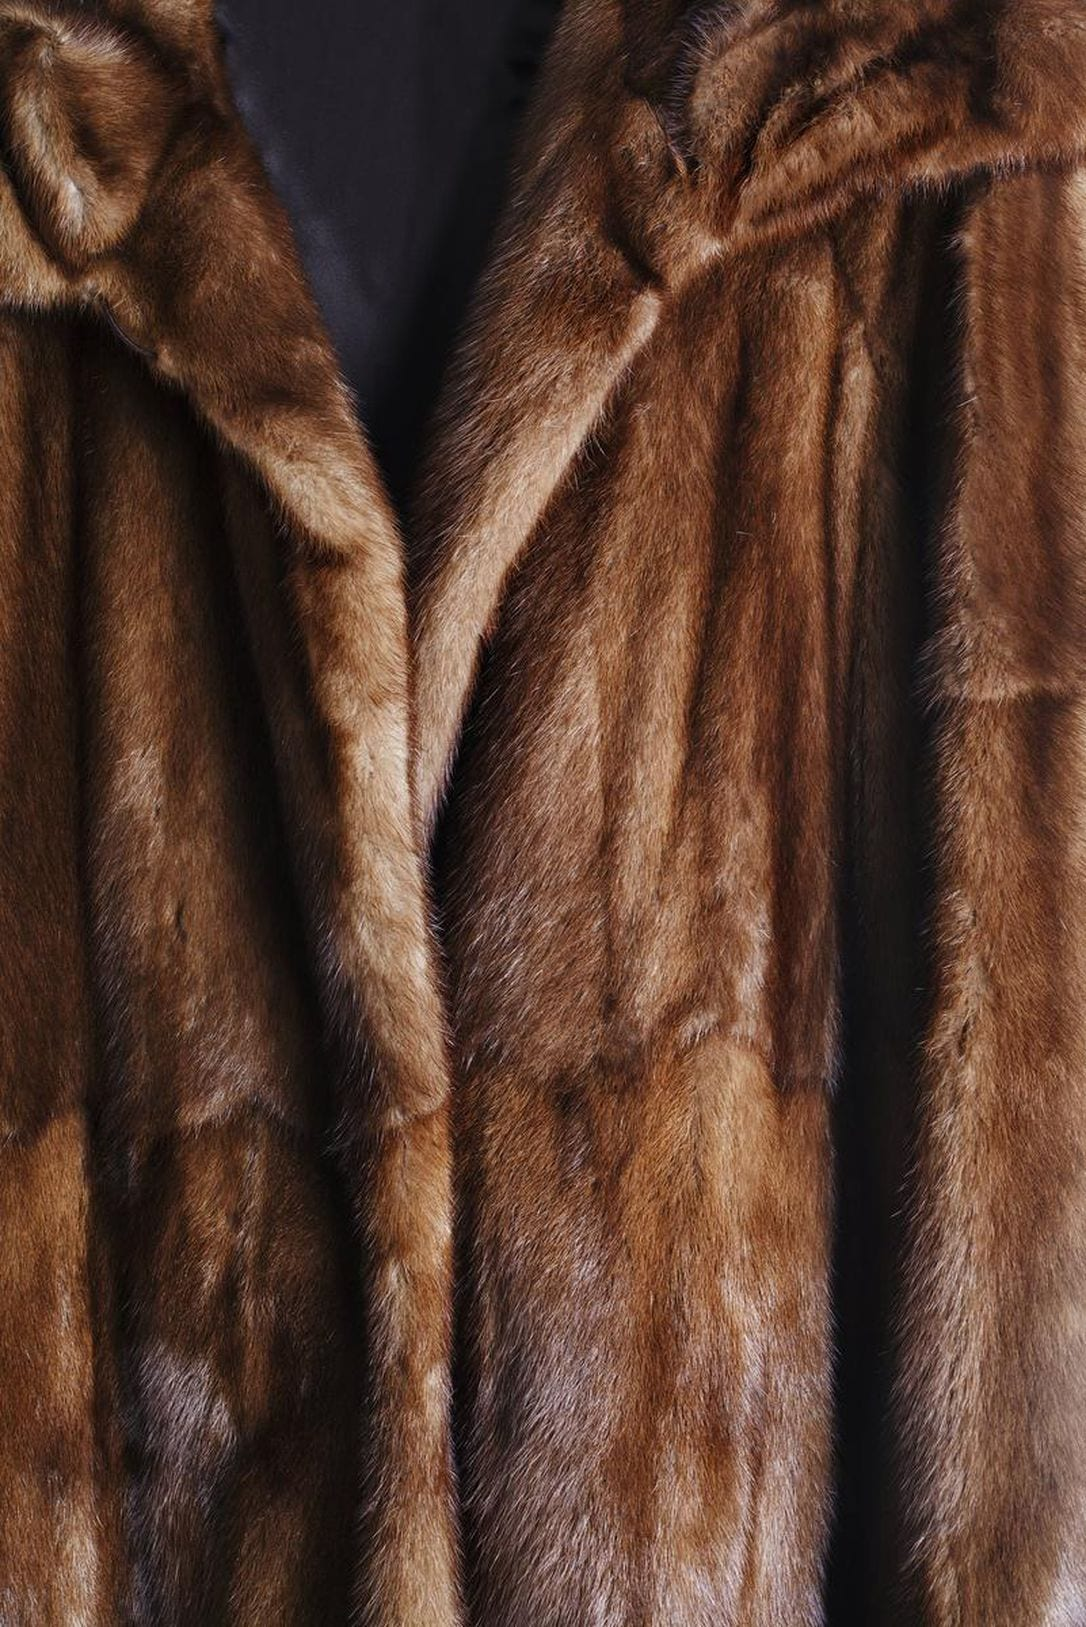 The Big Debate: Should Toronto ban the sale of fur? | The Star